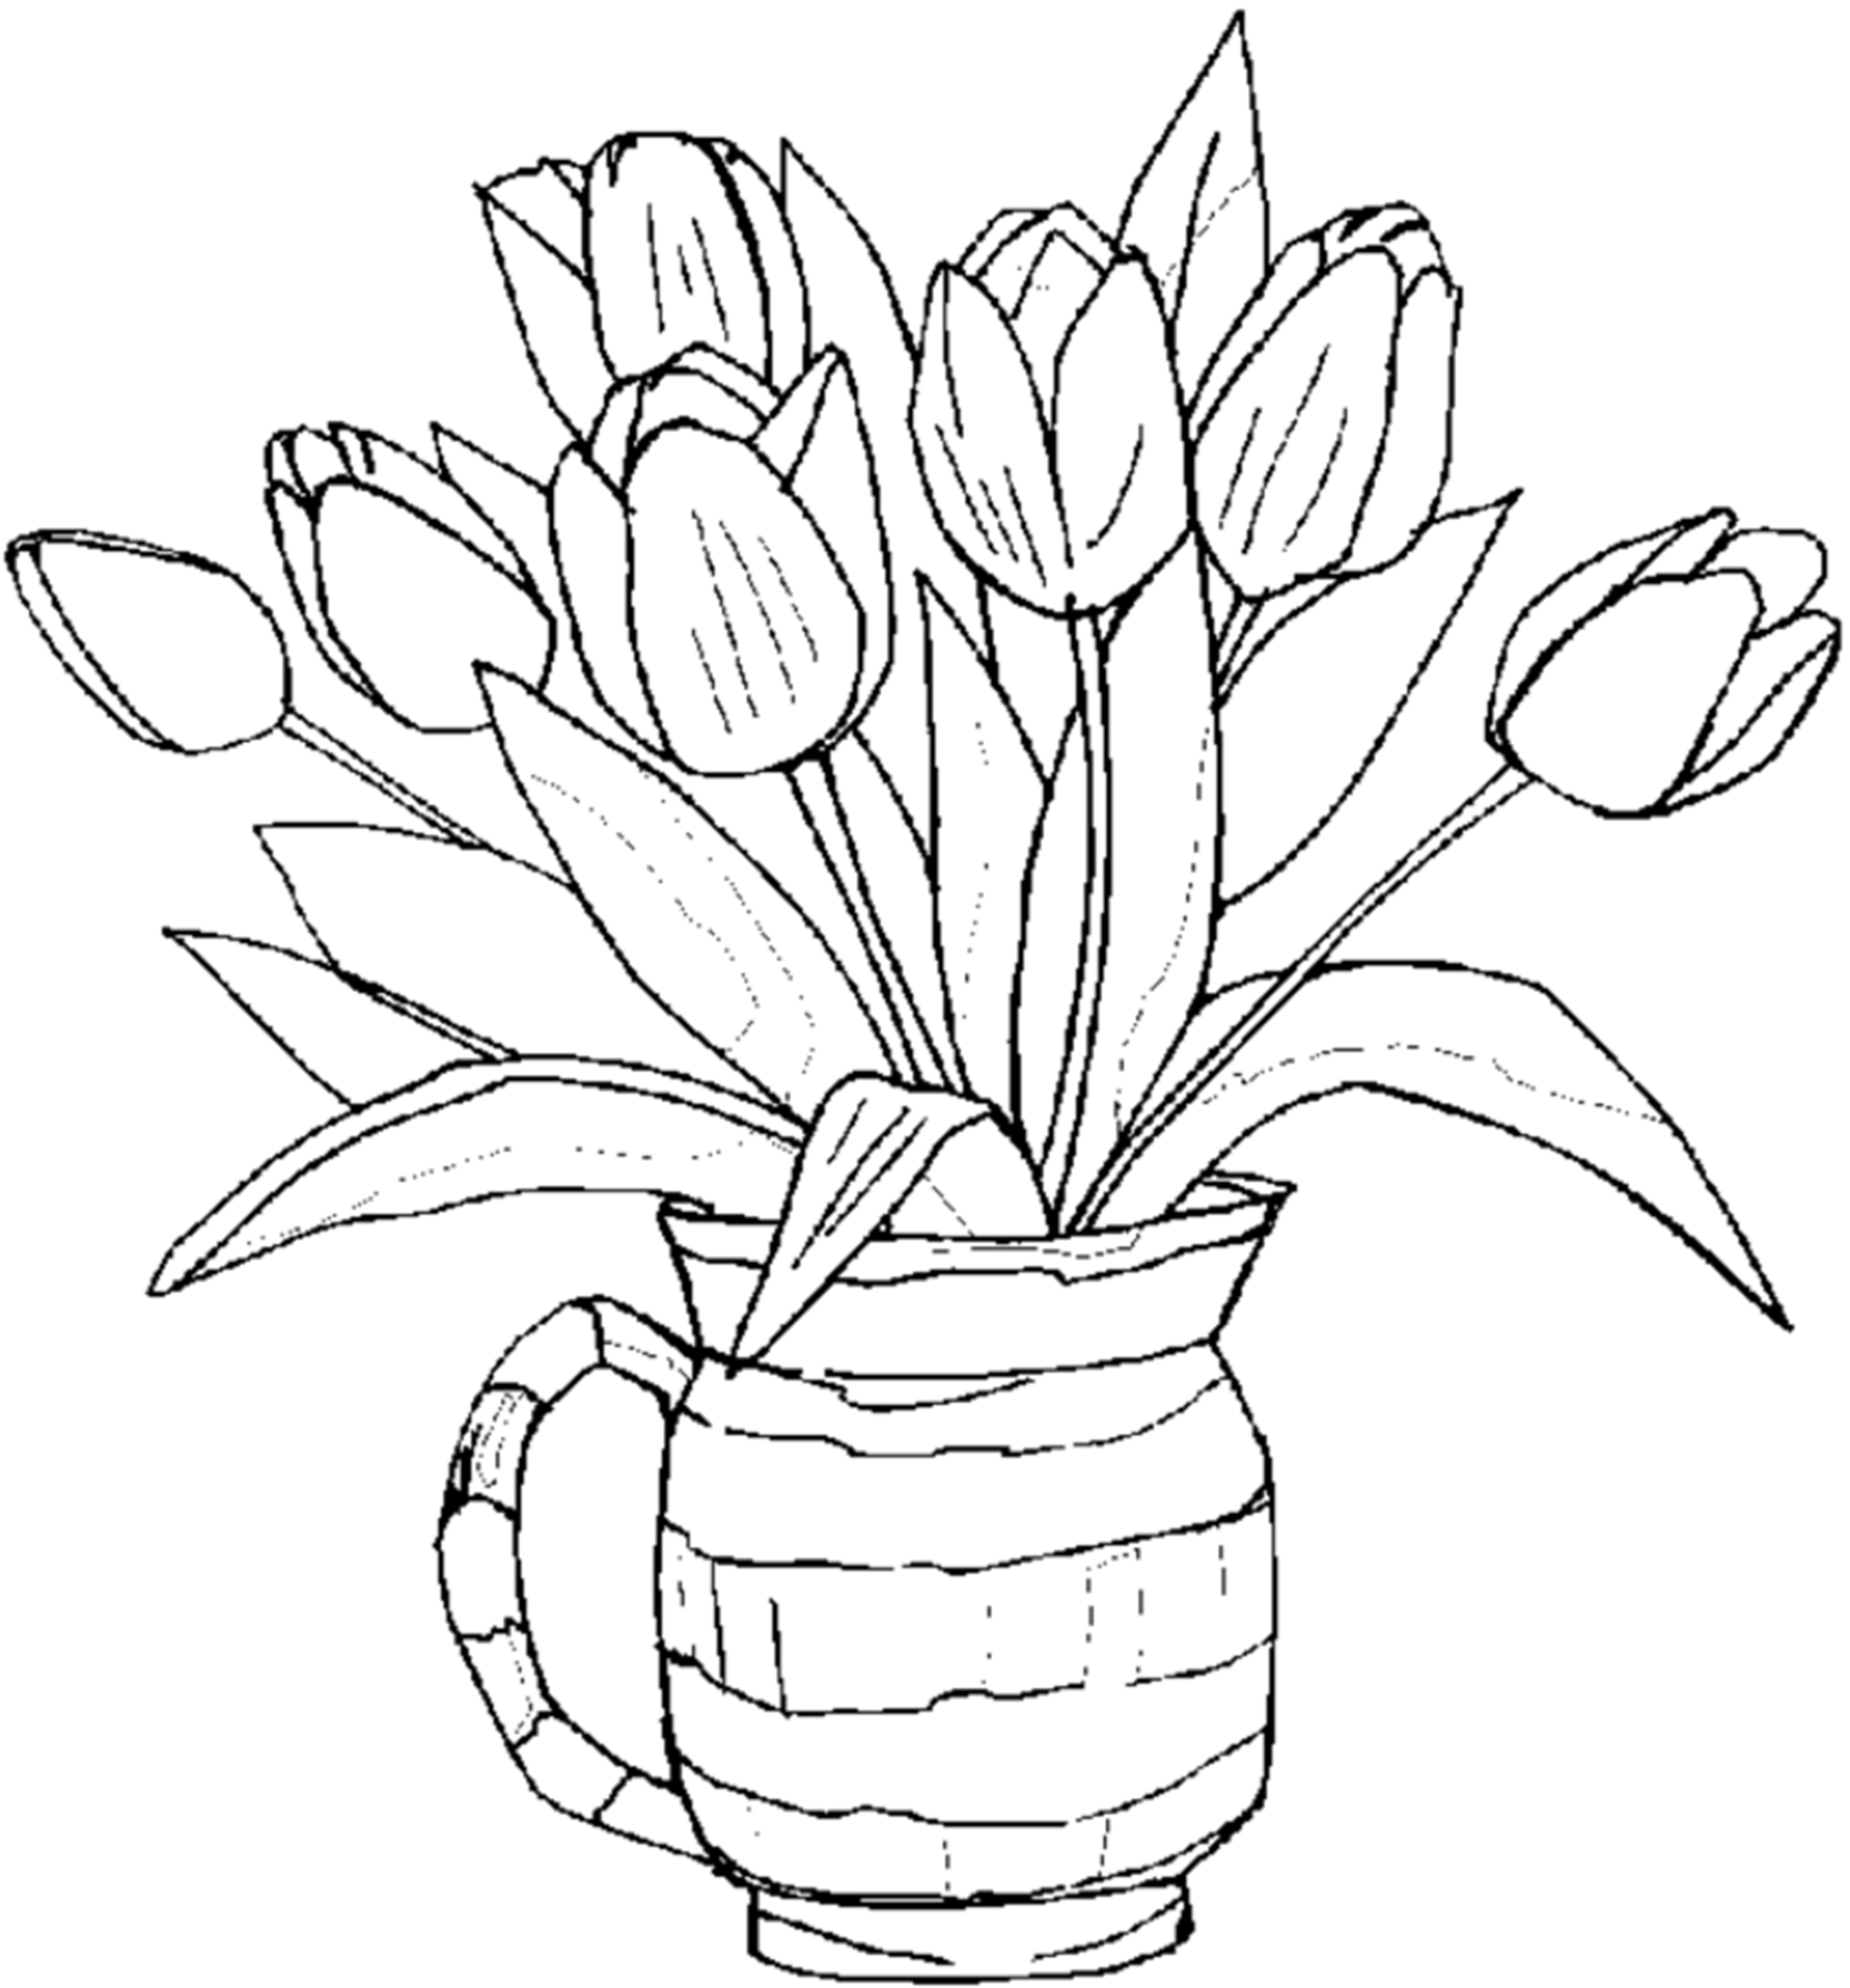 colouring sheets flowers and plants rainforest plants and flowers coloring pages and plants sheets flowers colouring